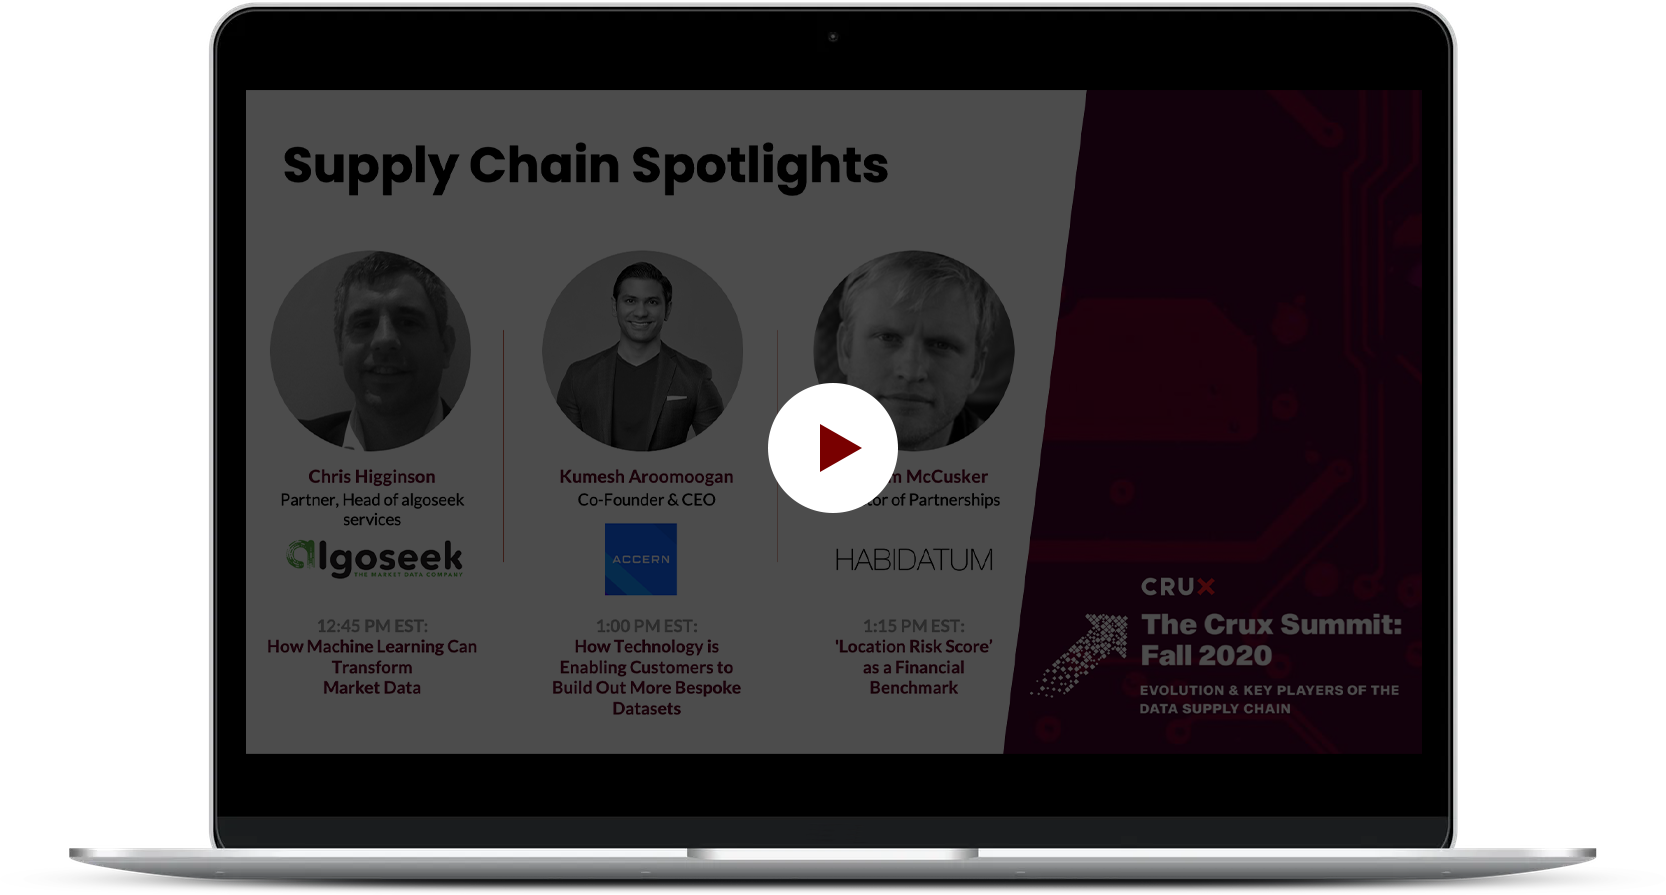 Crux_TCS_SupplyChainSpotlights_11